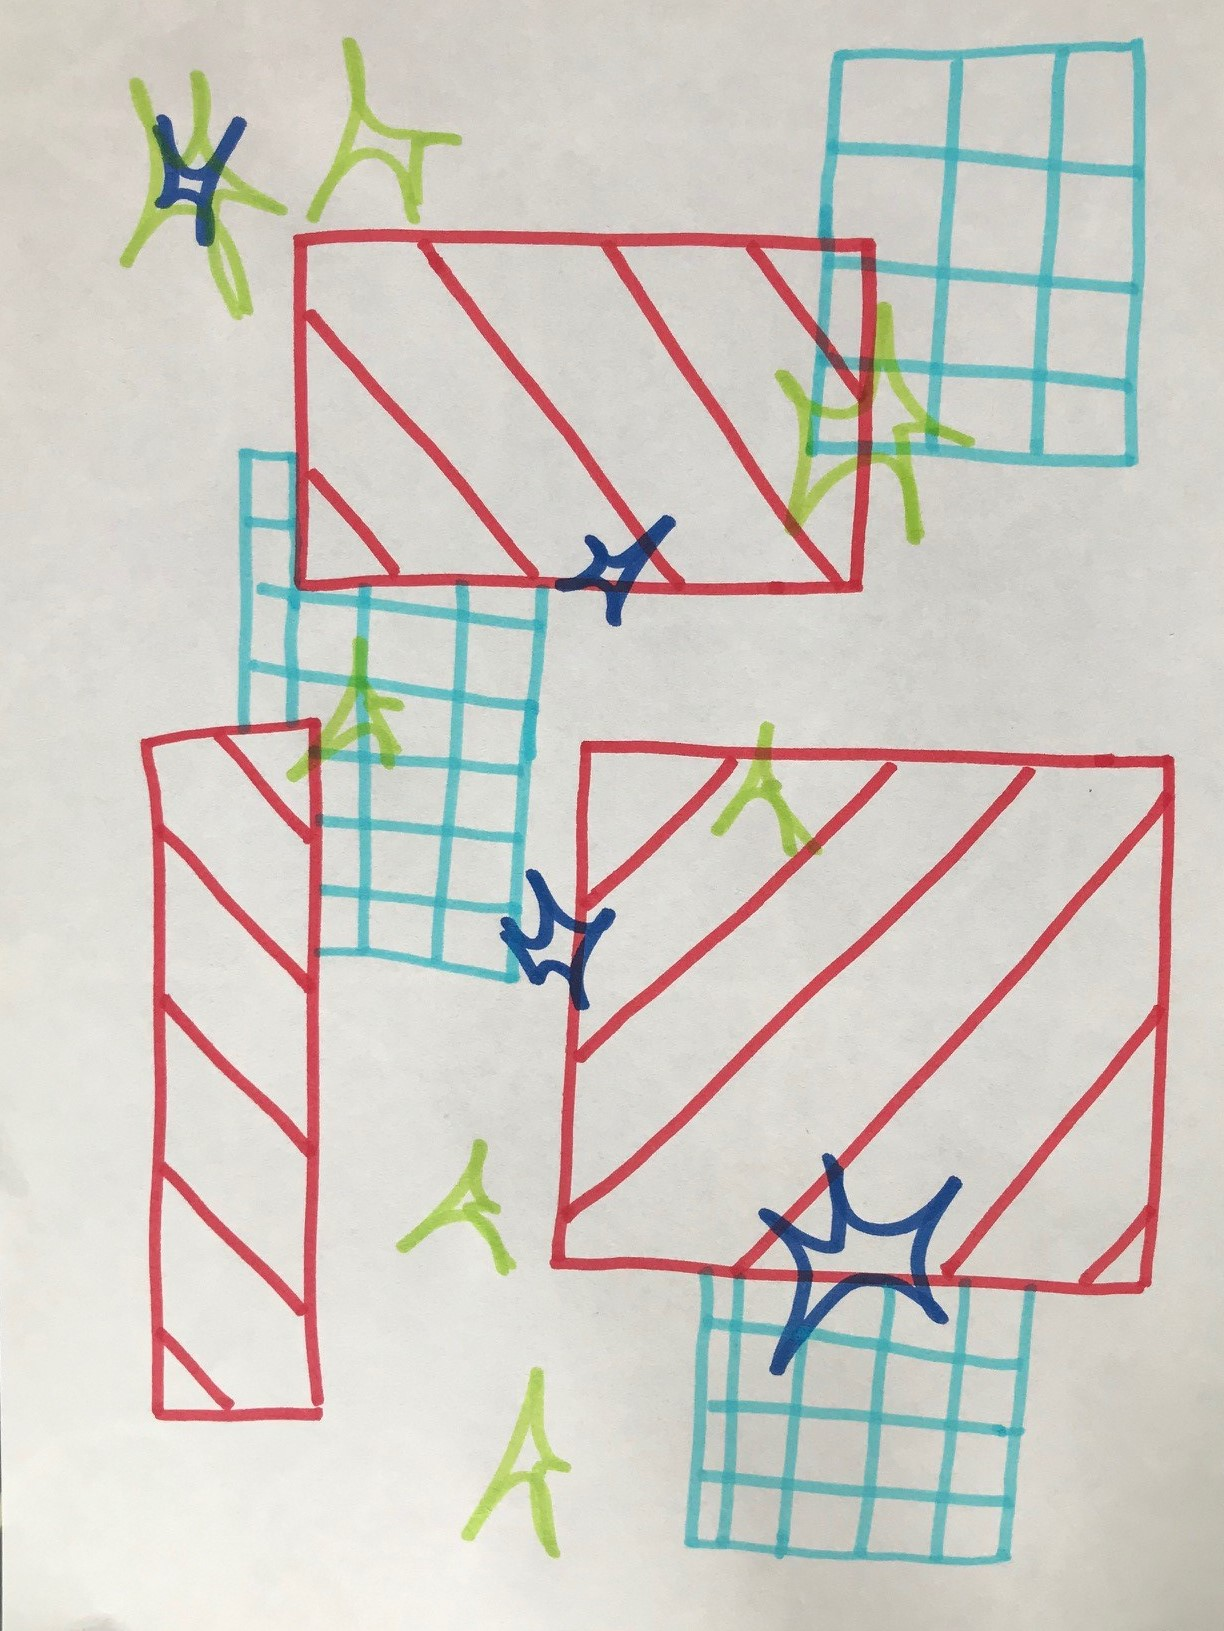 Drawing with red and blue overlapping blocks, green and blue flashes scattered across the drawing.